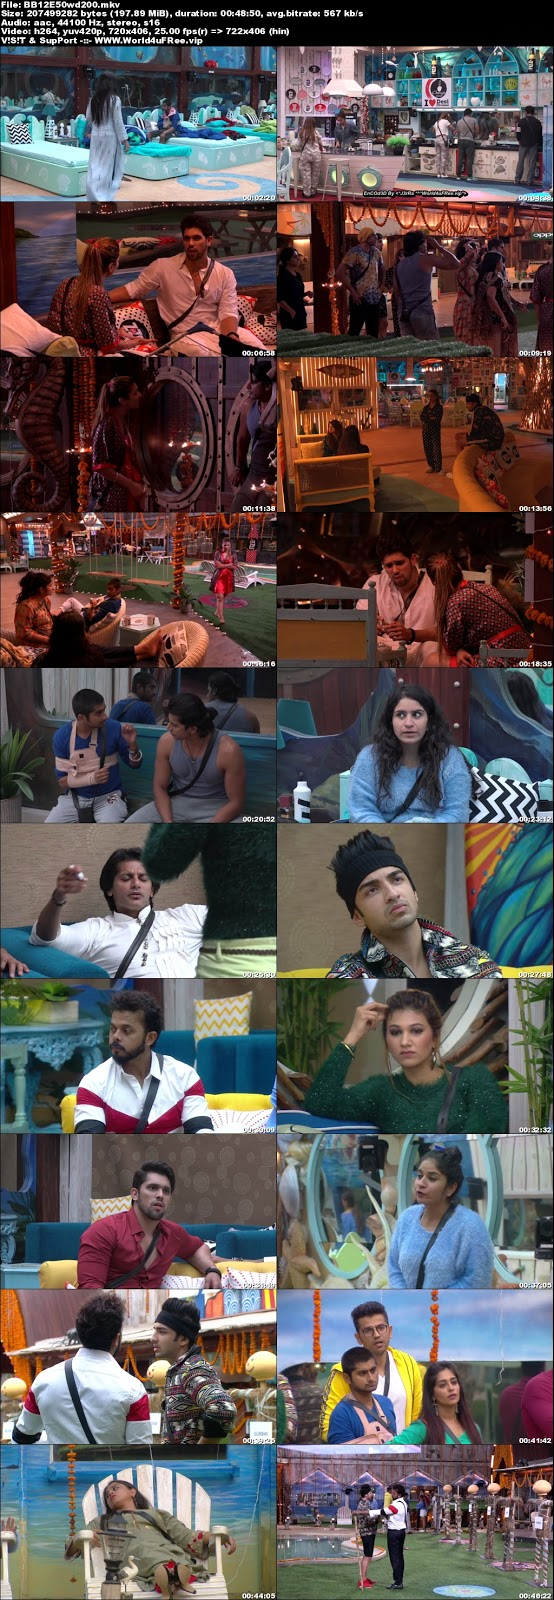 Bigg Boss 12 Episode 50 05 November 2018 WEBRip 480p 200Mb x264 world4ufree.fun tv show Episode 50 05 November 2018 world4ufree.fun 200mb 250mb 300mb compressed small size free download or watch online at world4ufree.fun